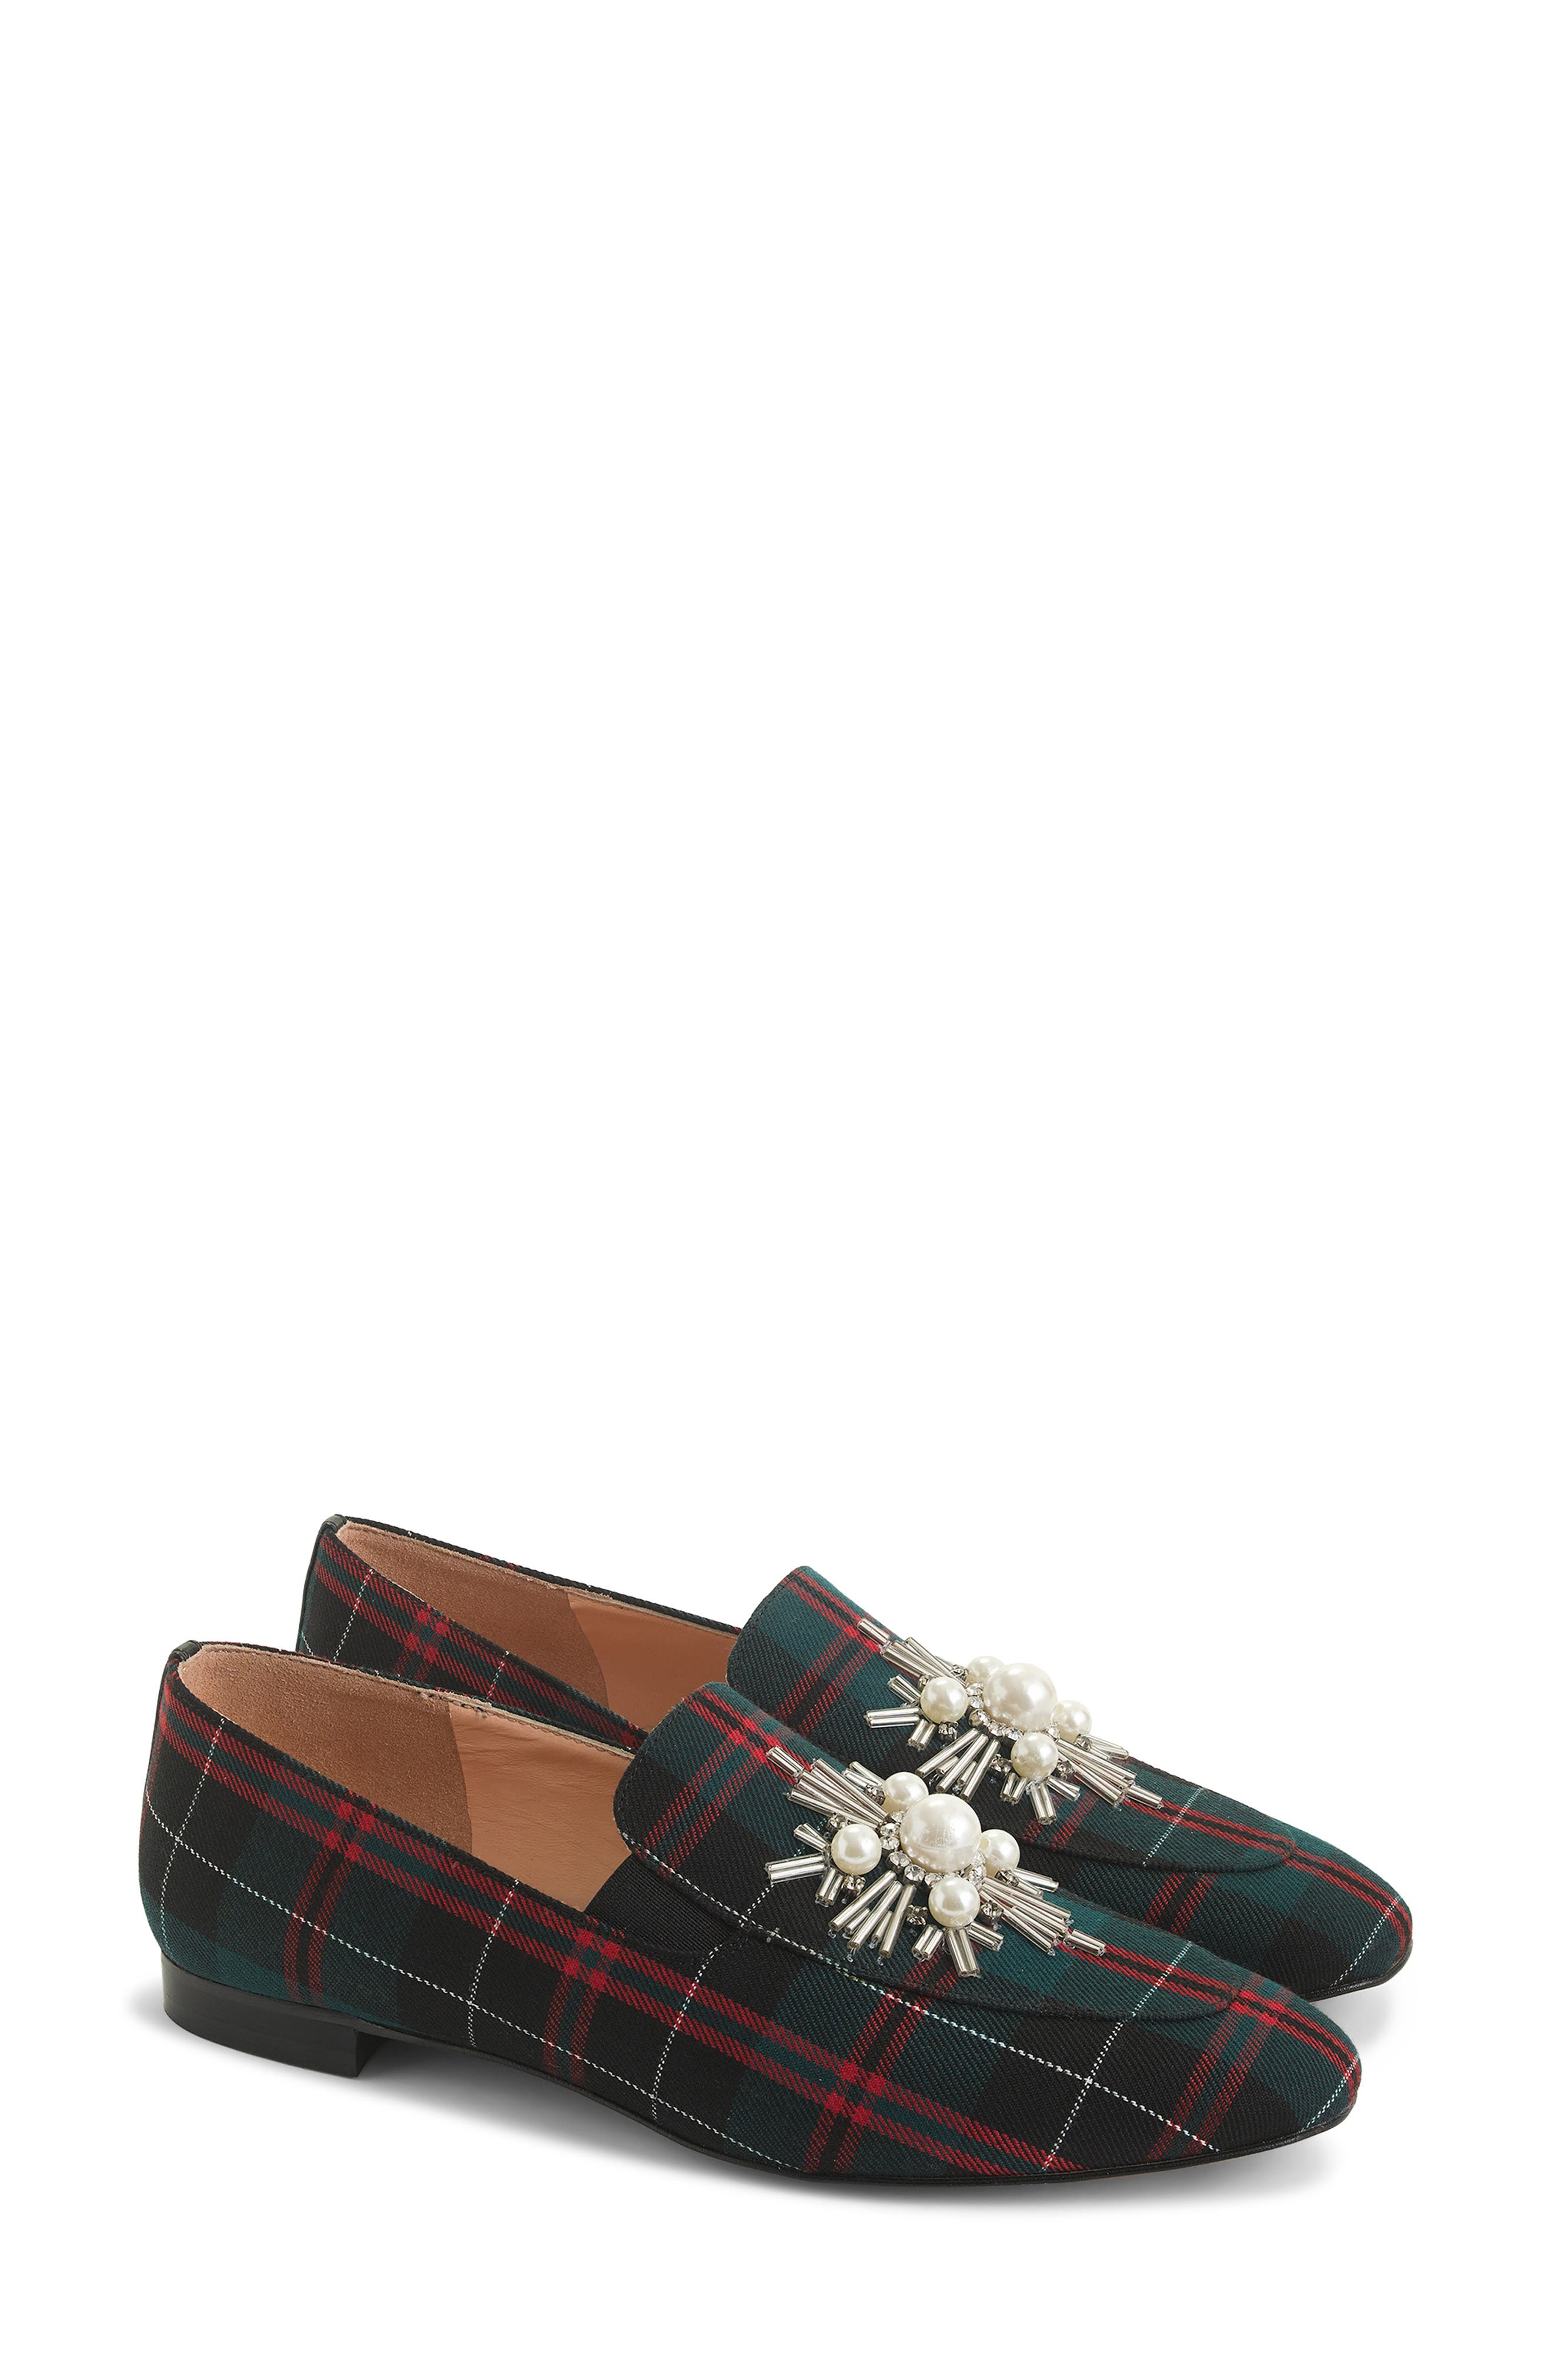 J. Crew Embellished Plaid Janie Loafer,                             Main thumbnail 1, color,                             GREEN PLAID FABRIC